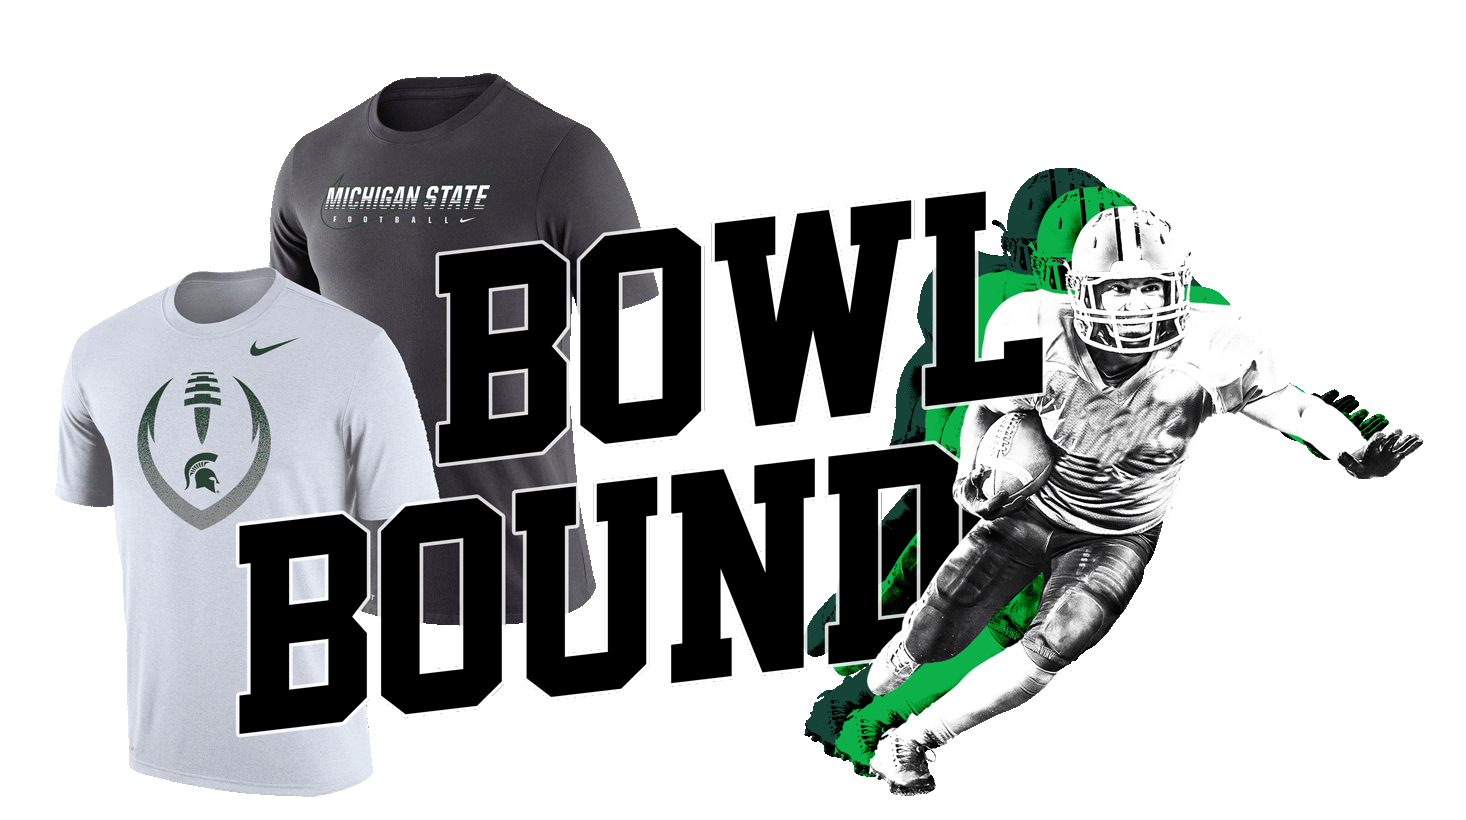 Michigan State Apparel & Gear.